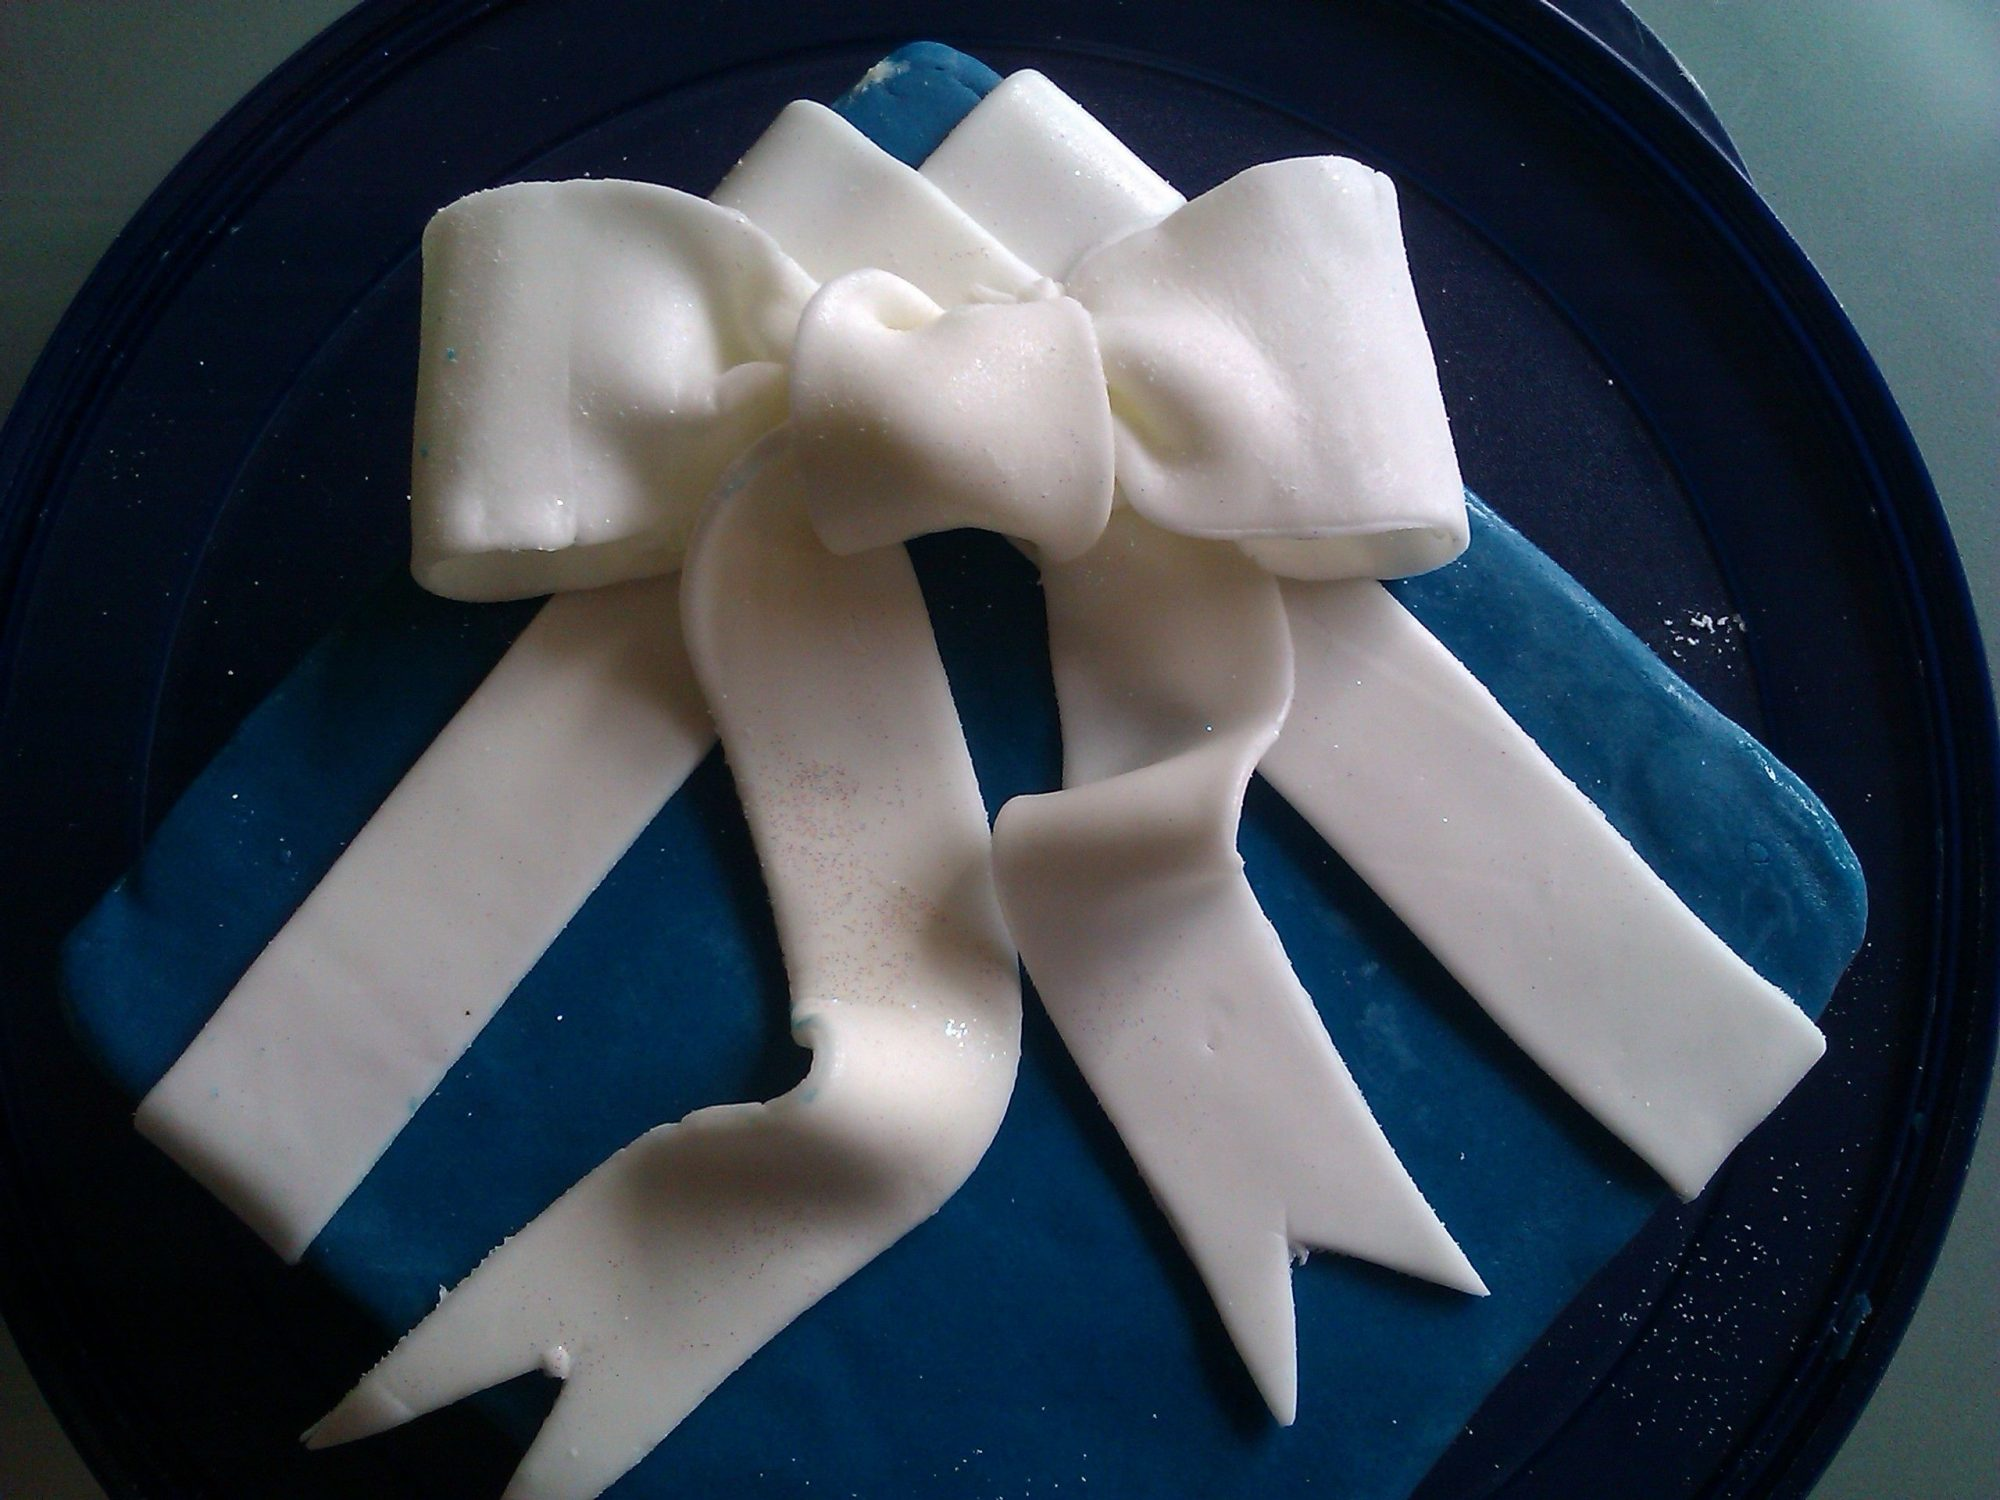 A square cake decorated to look like a blue-wrapped gift tied with a white fondant ribbon and bow